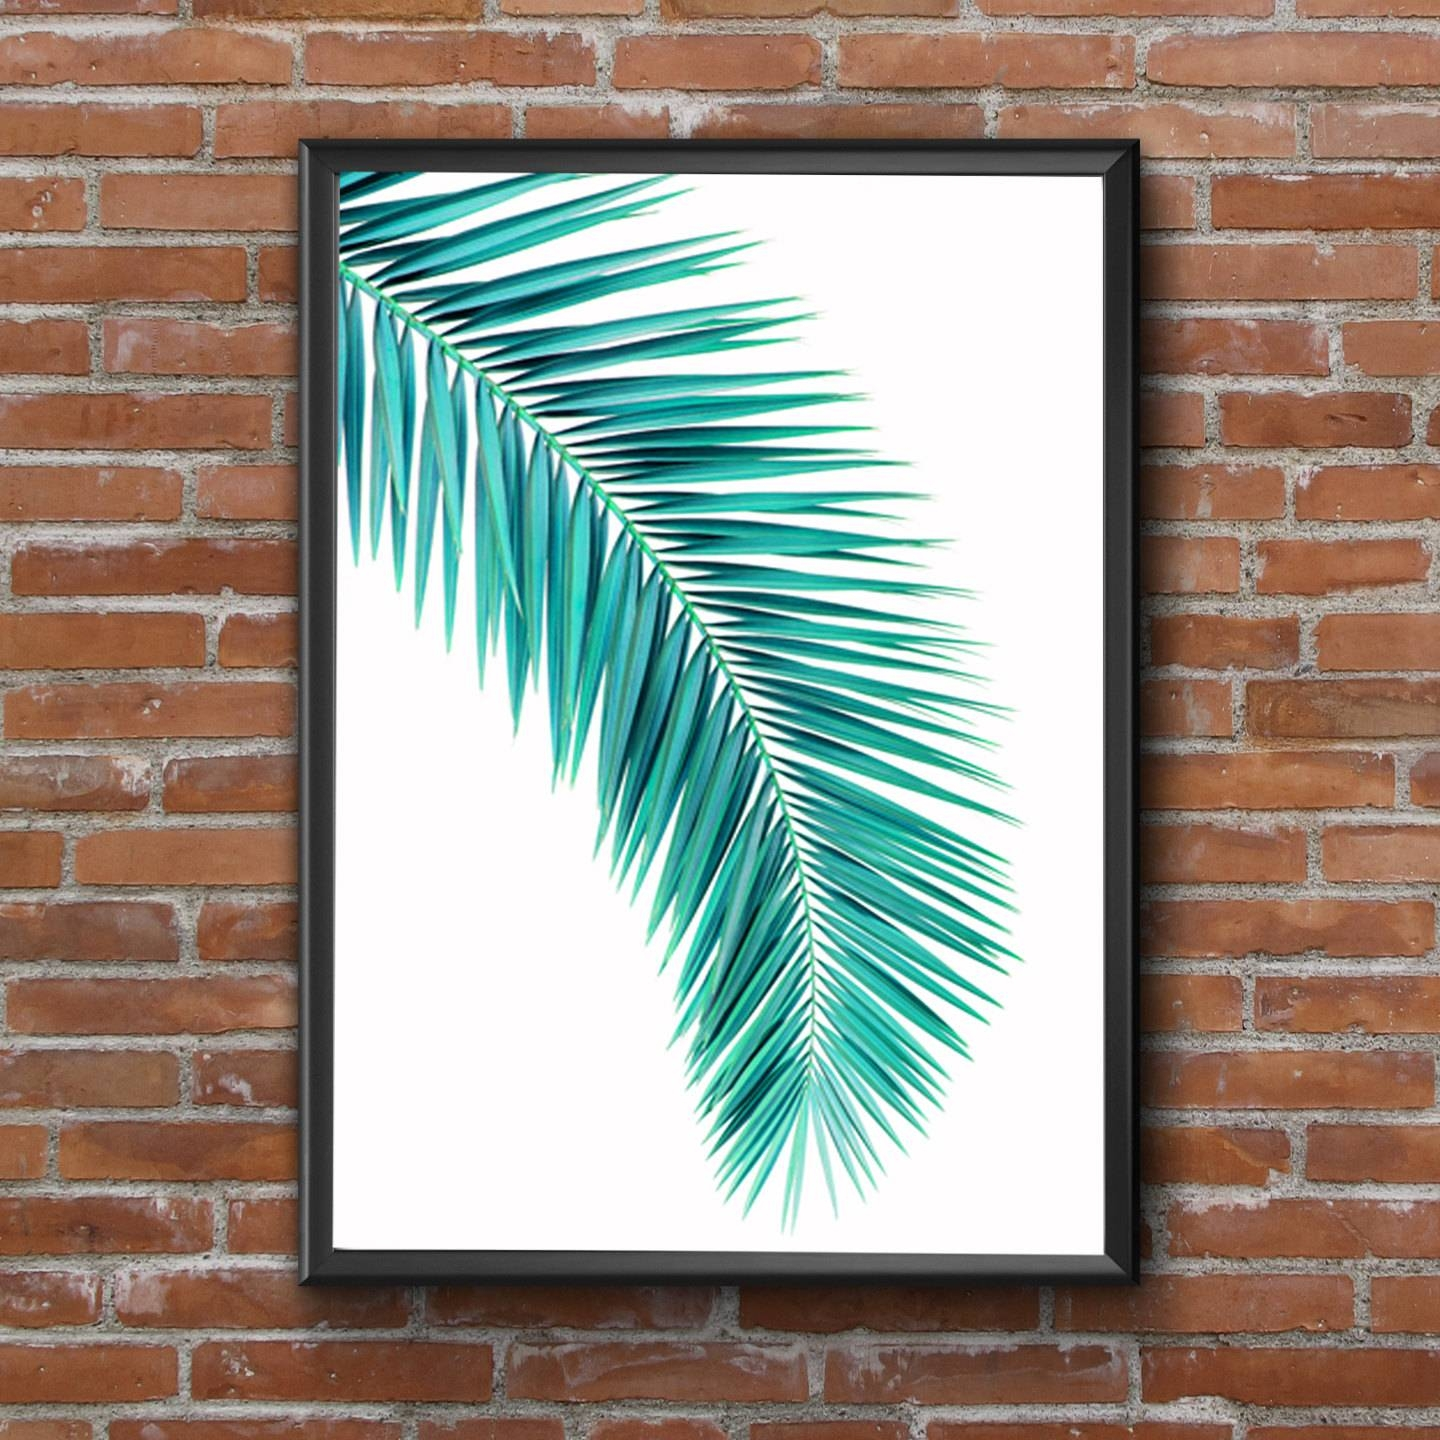 Wondrous Outdoor Palm Tree Wall Decor Palm Tree Wall Mirror Regarding Most Current Palm Leaf Wall Decor (View 25 of 25)